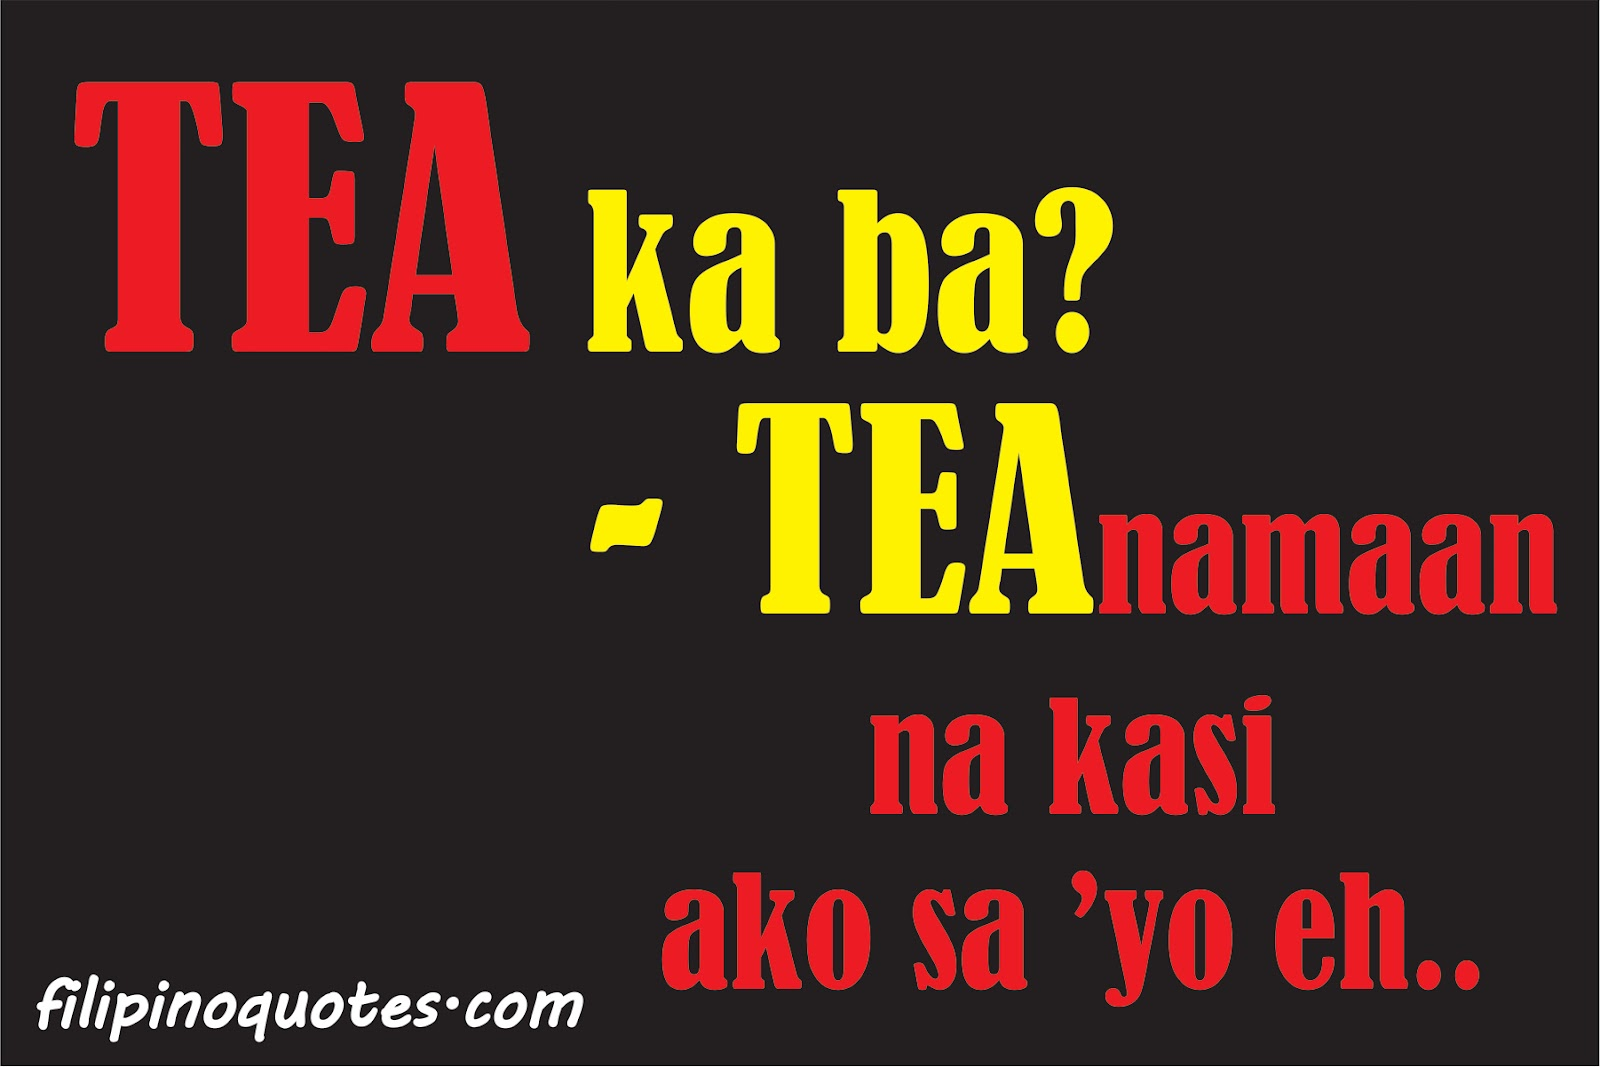 Love Quotes For Him Tagalog Pick Up Lines : pick up lines @ PICK UP LINES AT BEST! Heres the new tagalog pick up ...